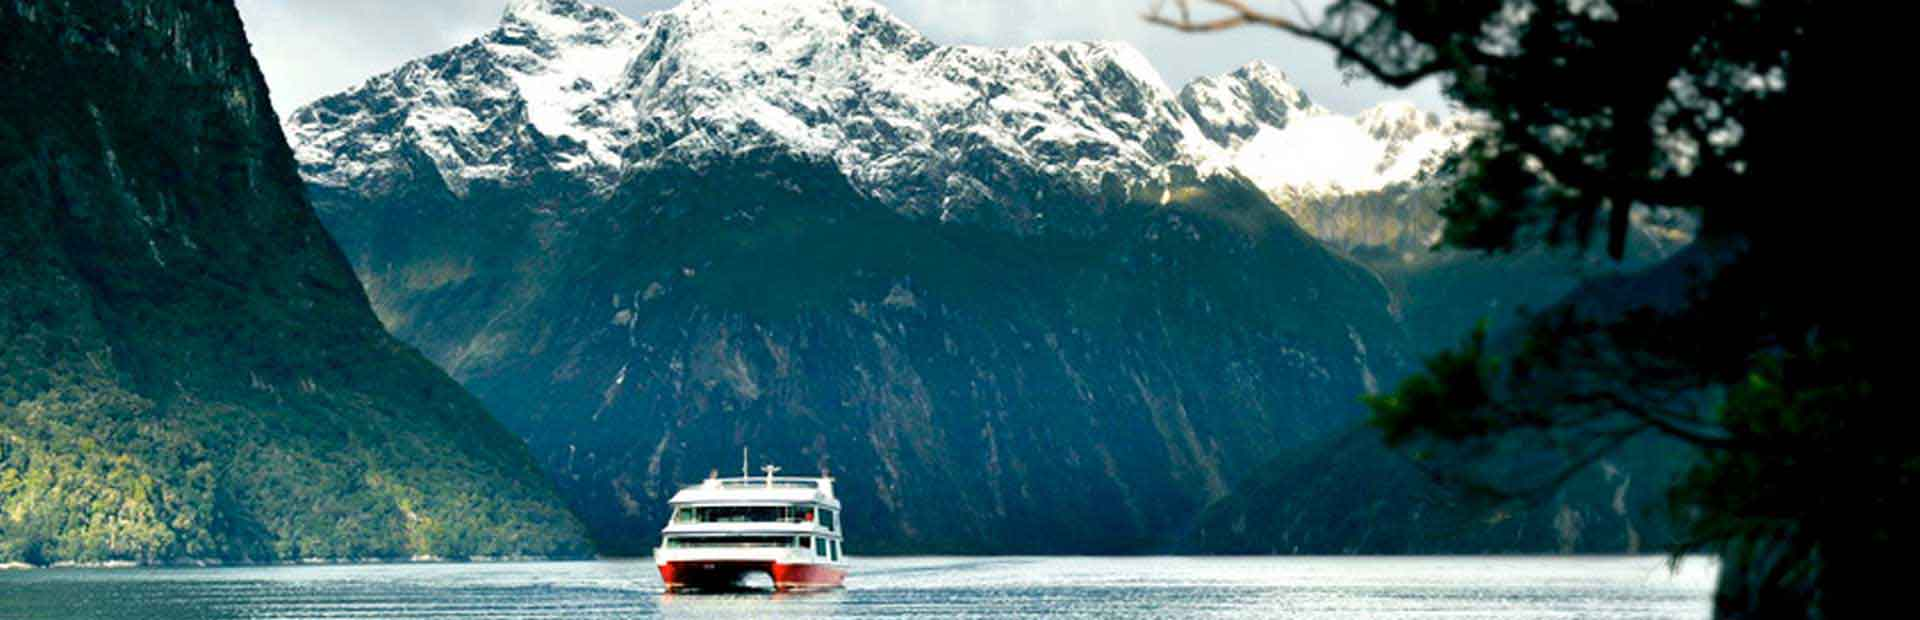 Milford Sound Scenic Cruise 1:30PM Southern Discoveries